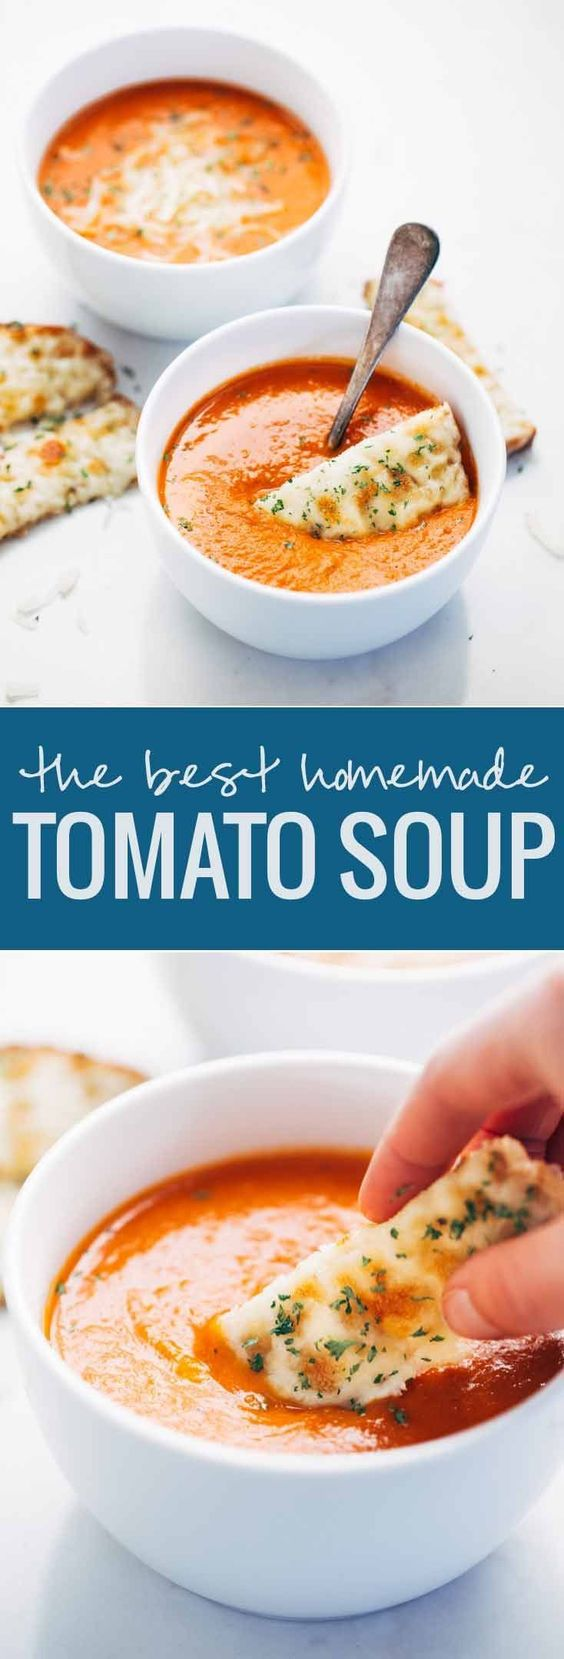 Homemade, Pantry and Homemade tomato soups on Pinterest